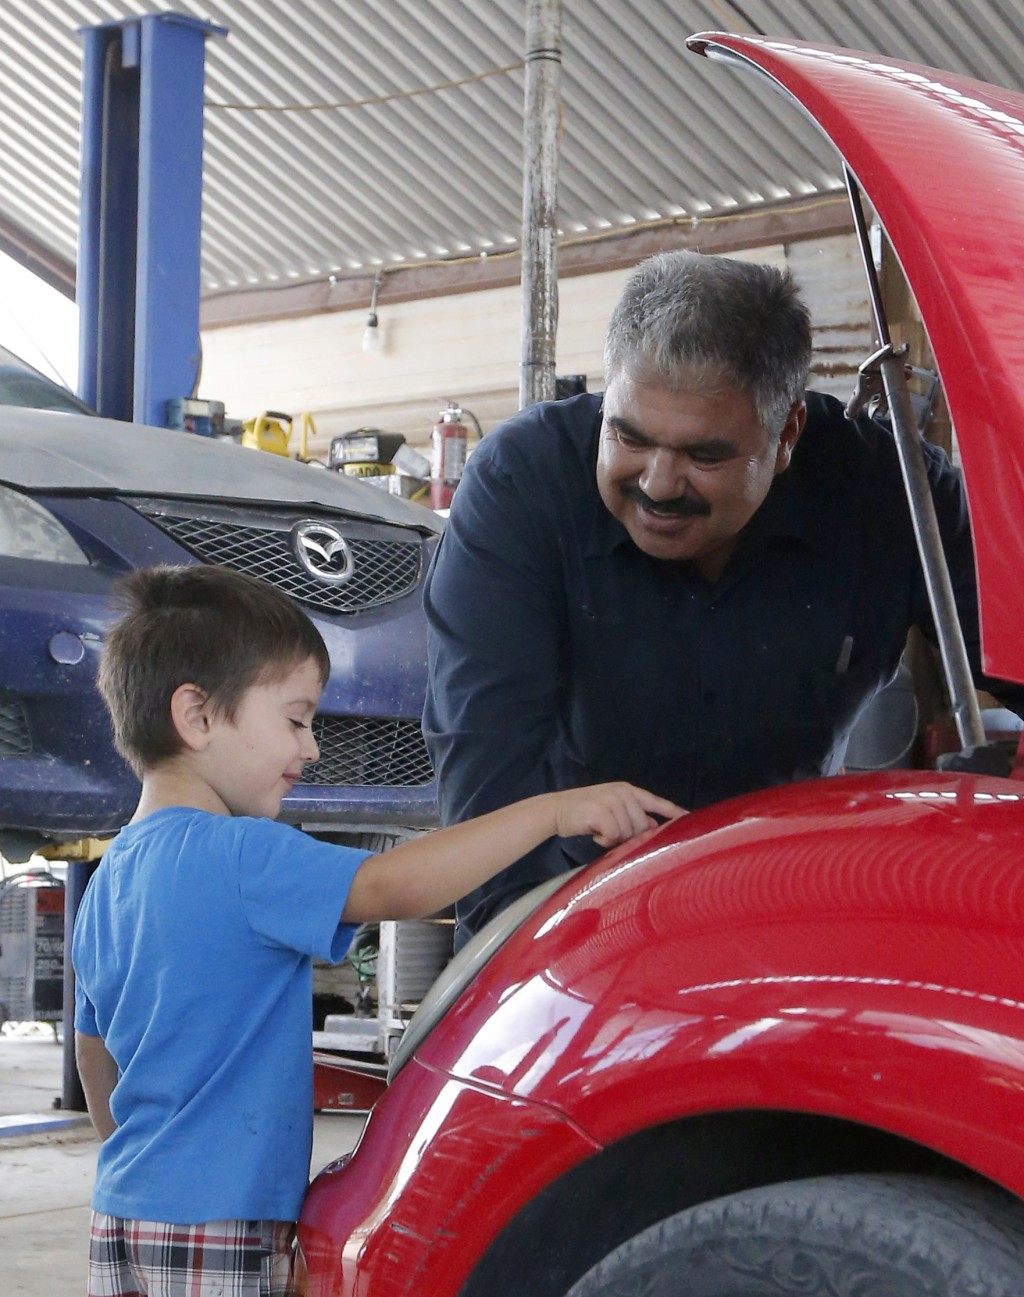 Ruben Moyoroqui, right, talks with his son, Rafael, in his auto repair shop in Tucson, Ariz., on Tuesday, Sept. 4, 2018. Moyoroqui, who came to the U.